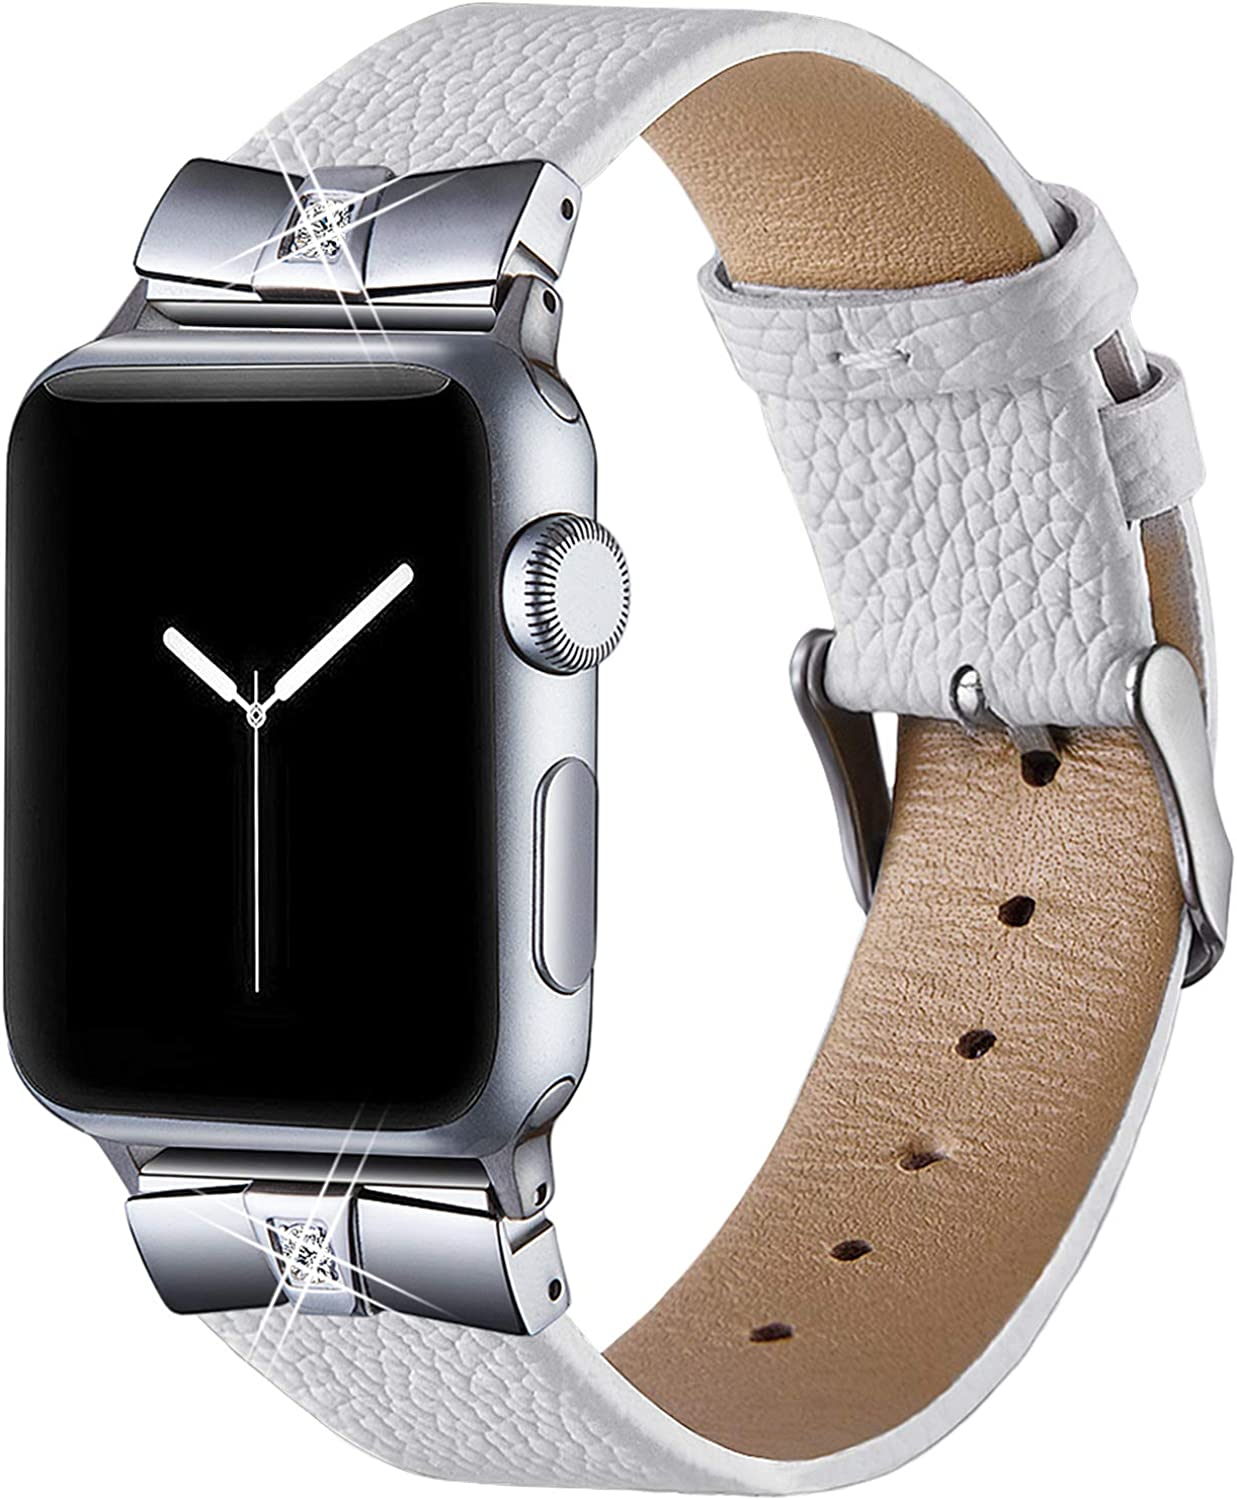 VIQIV Leather Bands for Compatible Apple Watch Band 38mm 42mm 40mm 44mm Iwatch Series 5/4/3/2/1, Womens Dressy Metal Diamond Replacement Wrist Band Strap